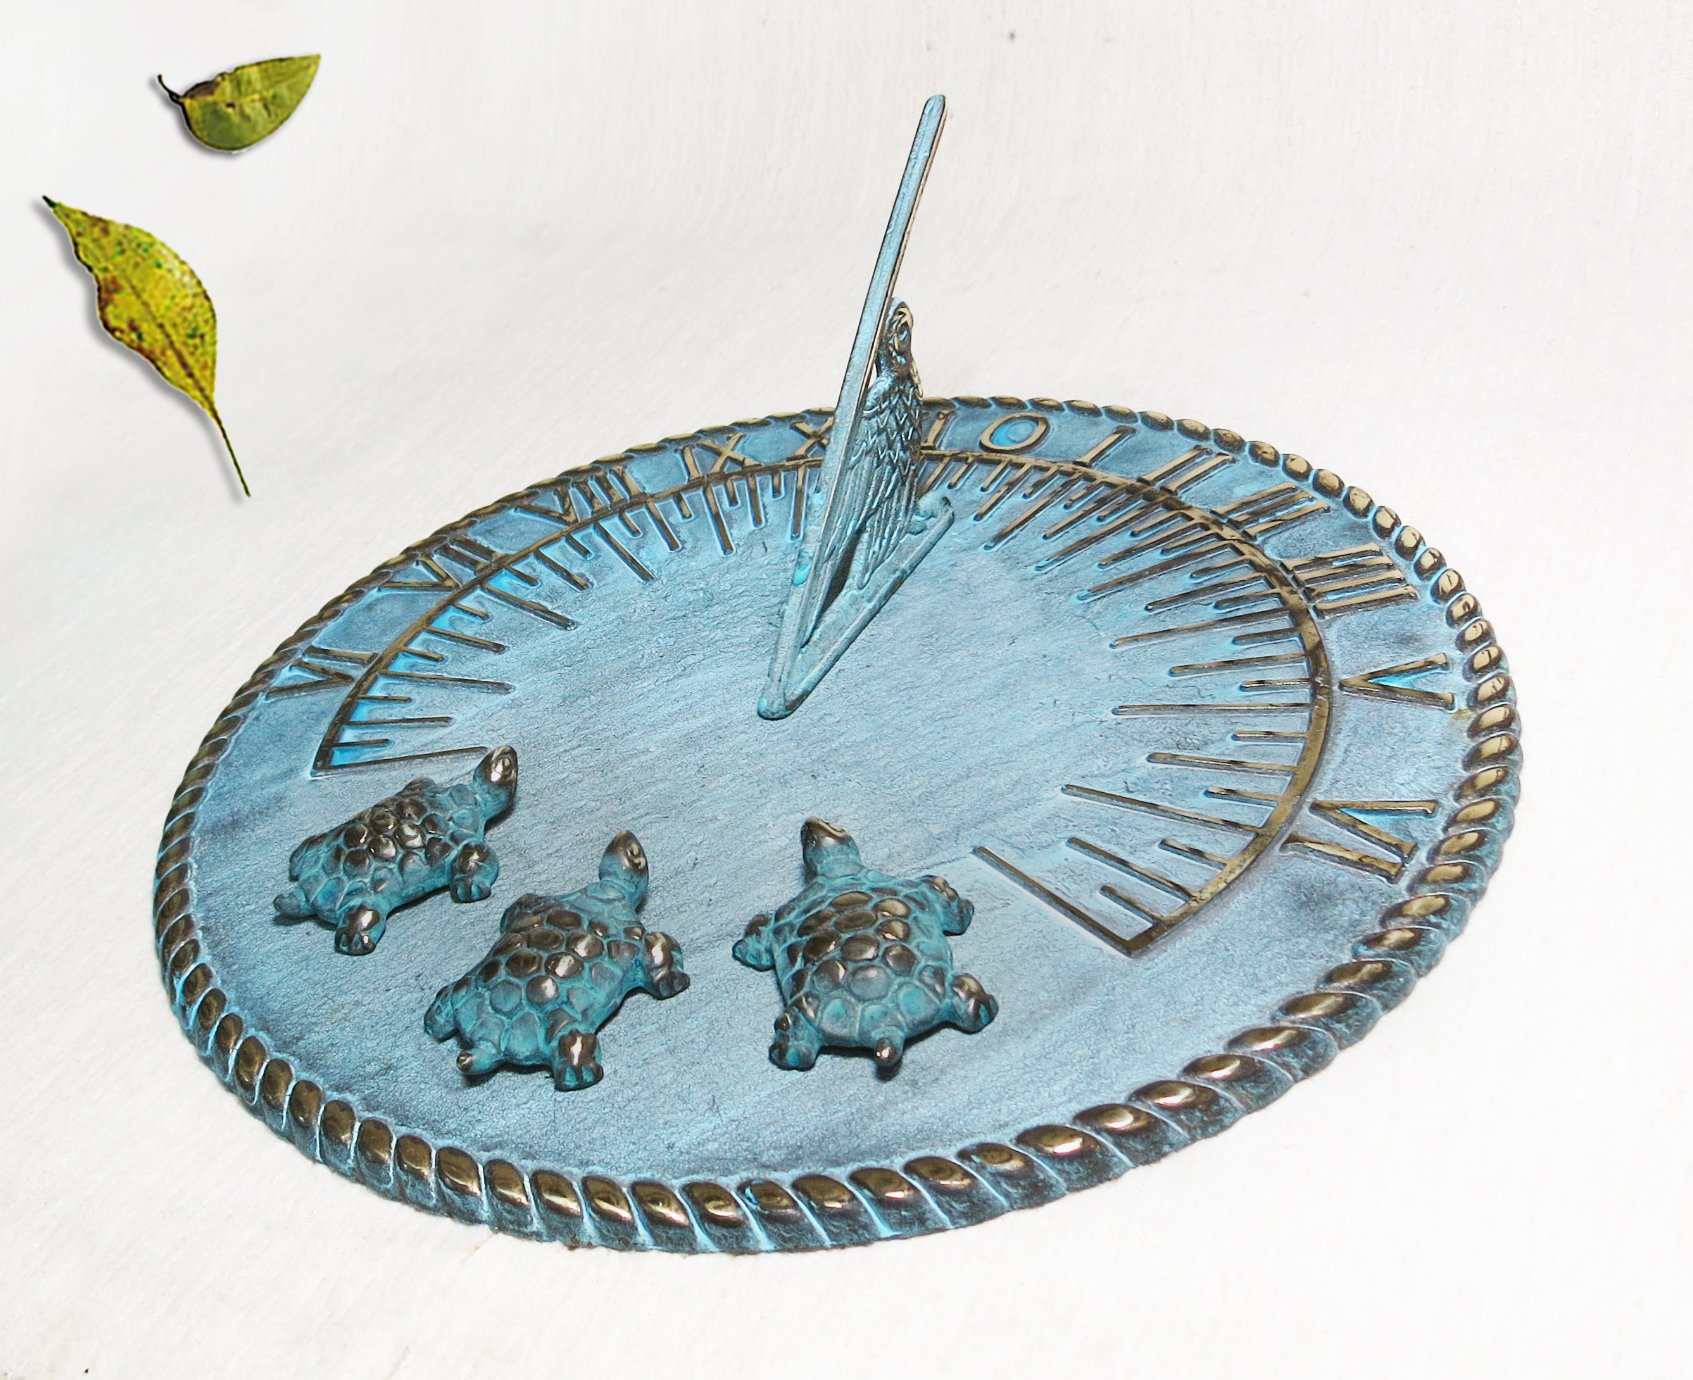 Brass Decorative Sundial 10'' Inches Wide - With 3 Turtles